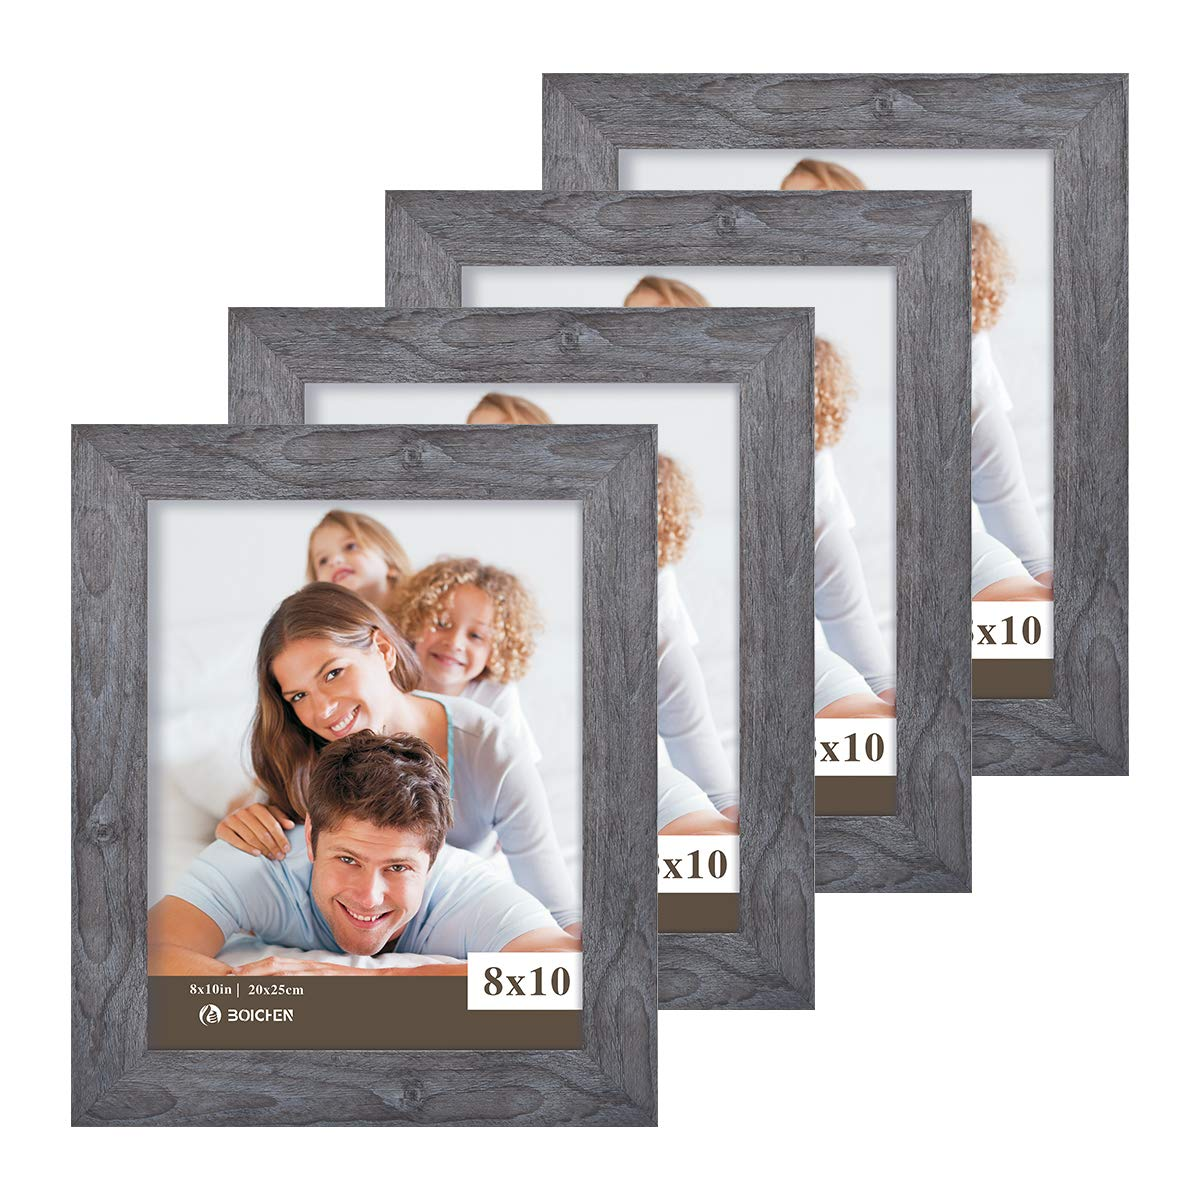 Boichen 8X10 Picture Frames 4 Pack Rustic Style Wood Pattern High Definition Glass for Tabletop Display and Wall mounting Photo Frame